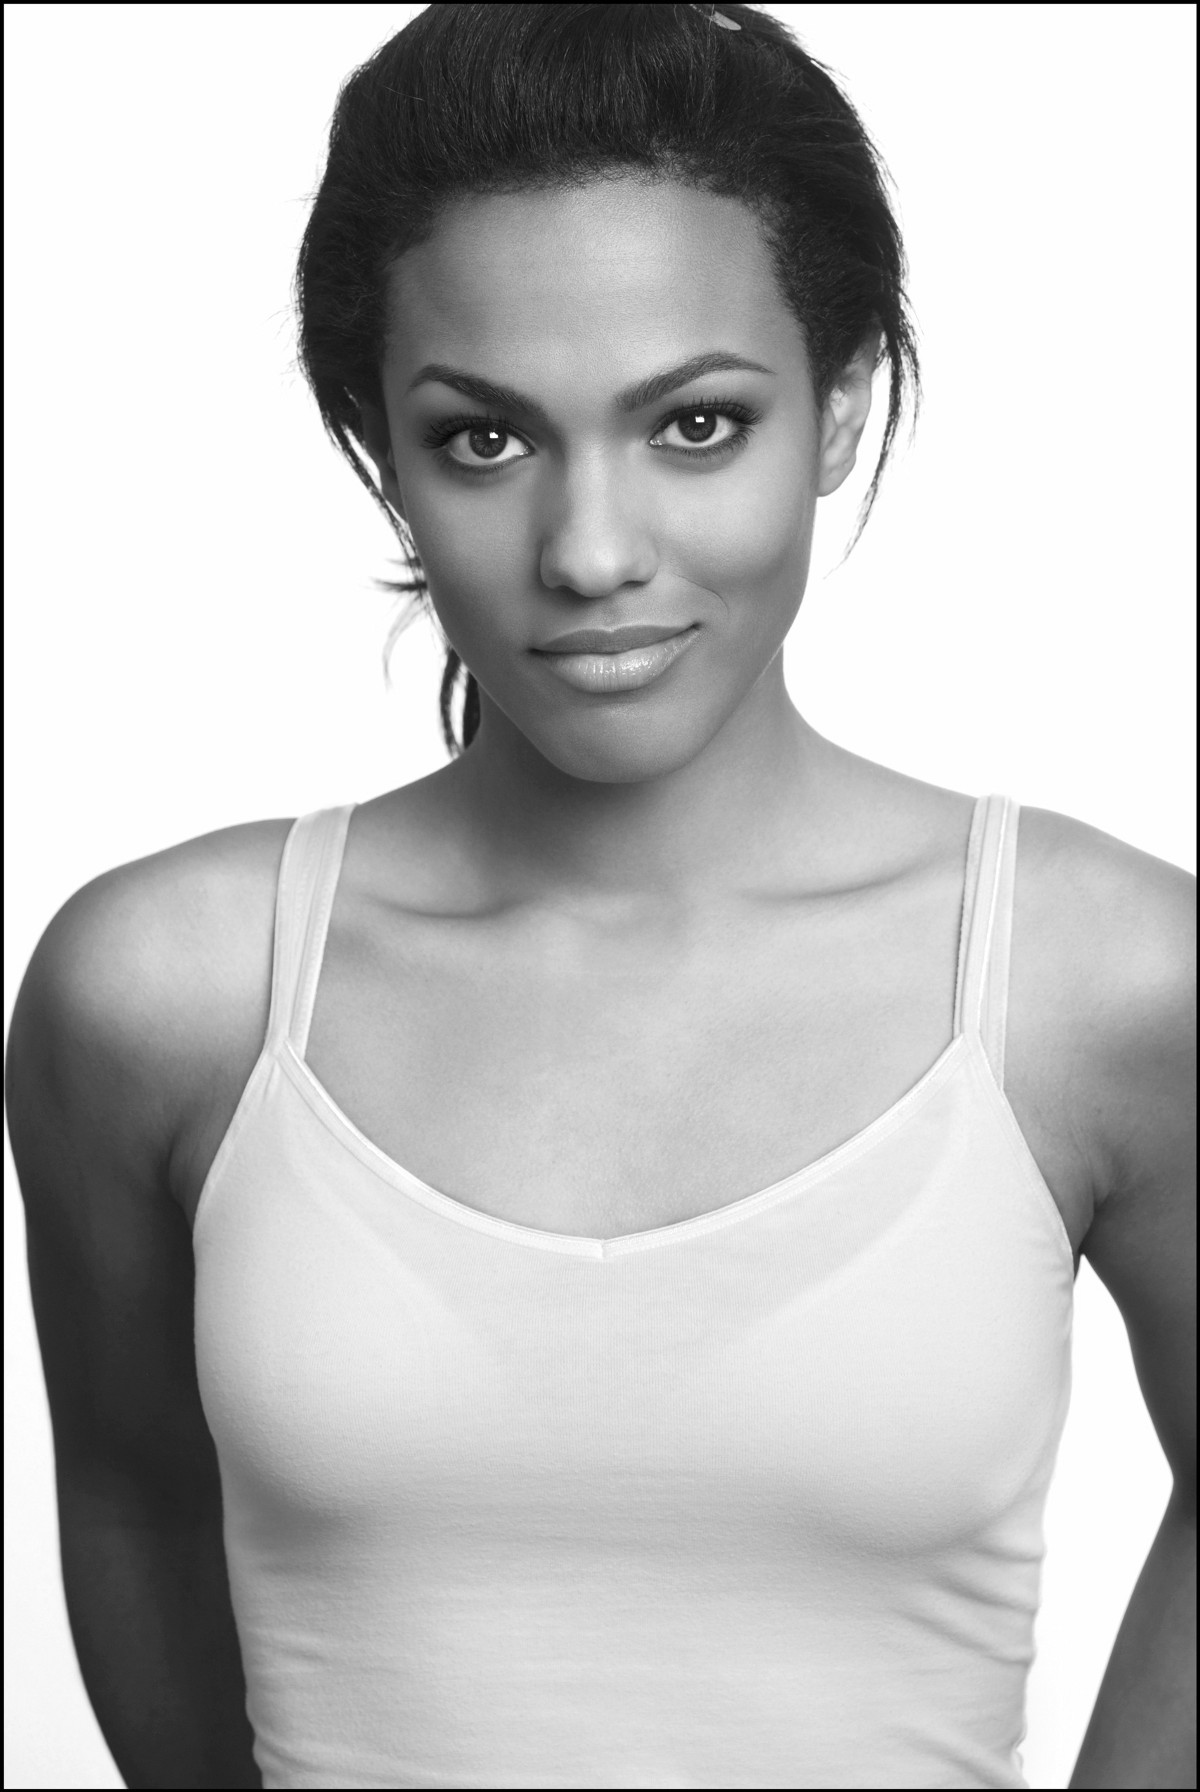 Freema Agyeman nude photos 2019